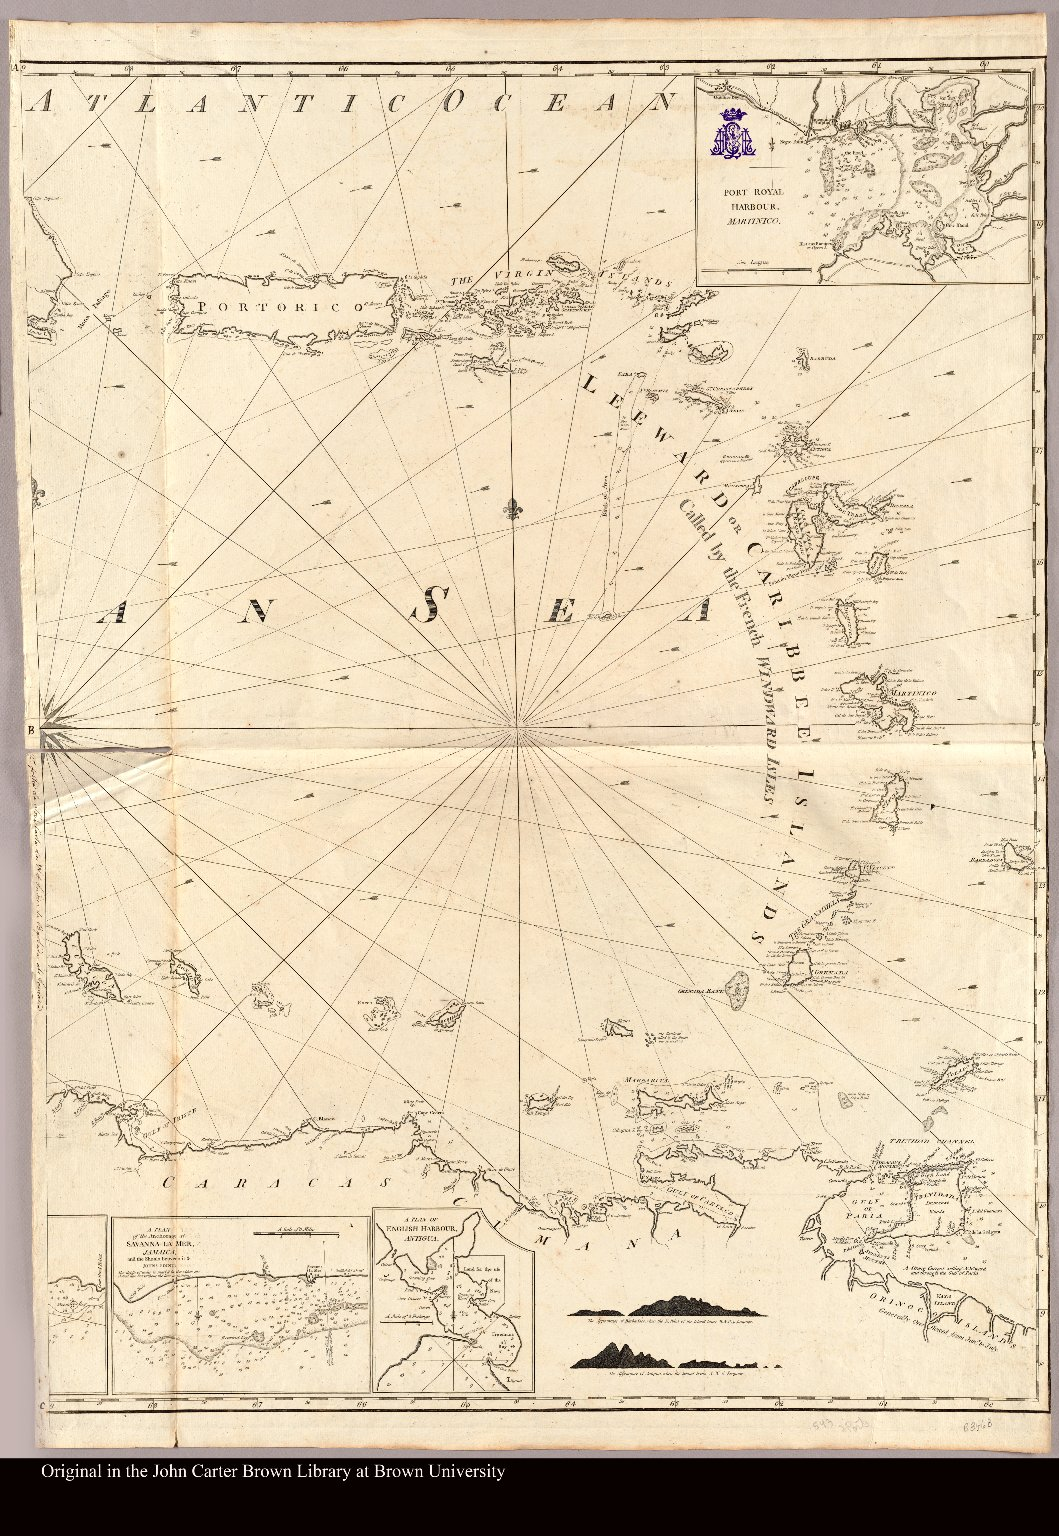 [Map of the Caribbean islands, including Puerto Rico and the Antilles or Leeward Islands]